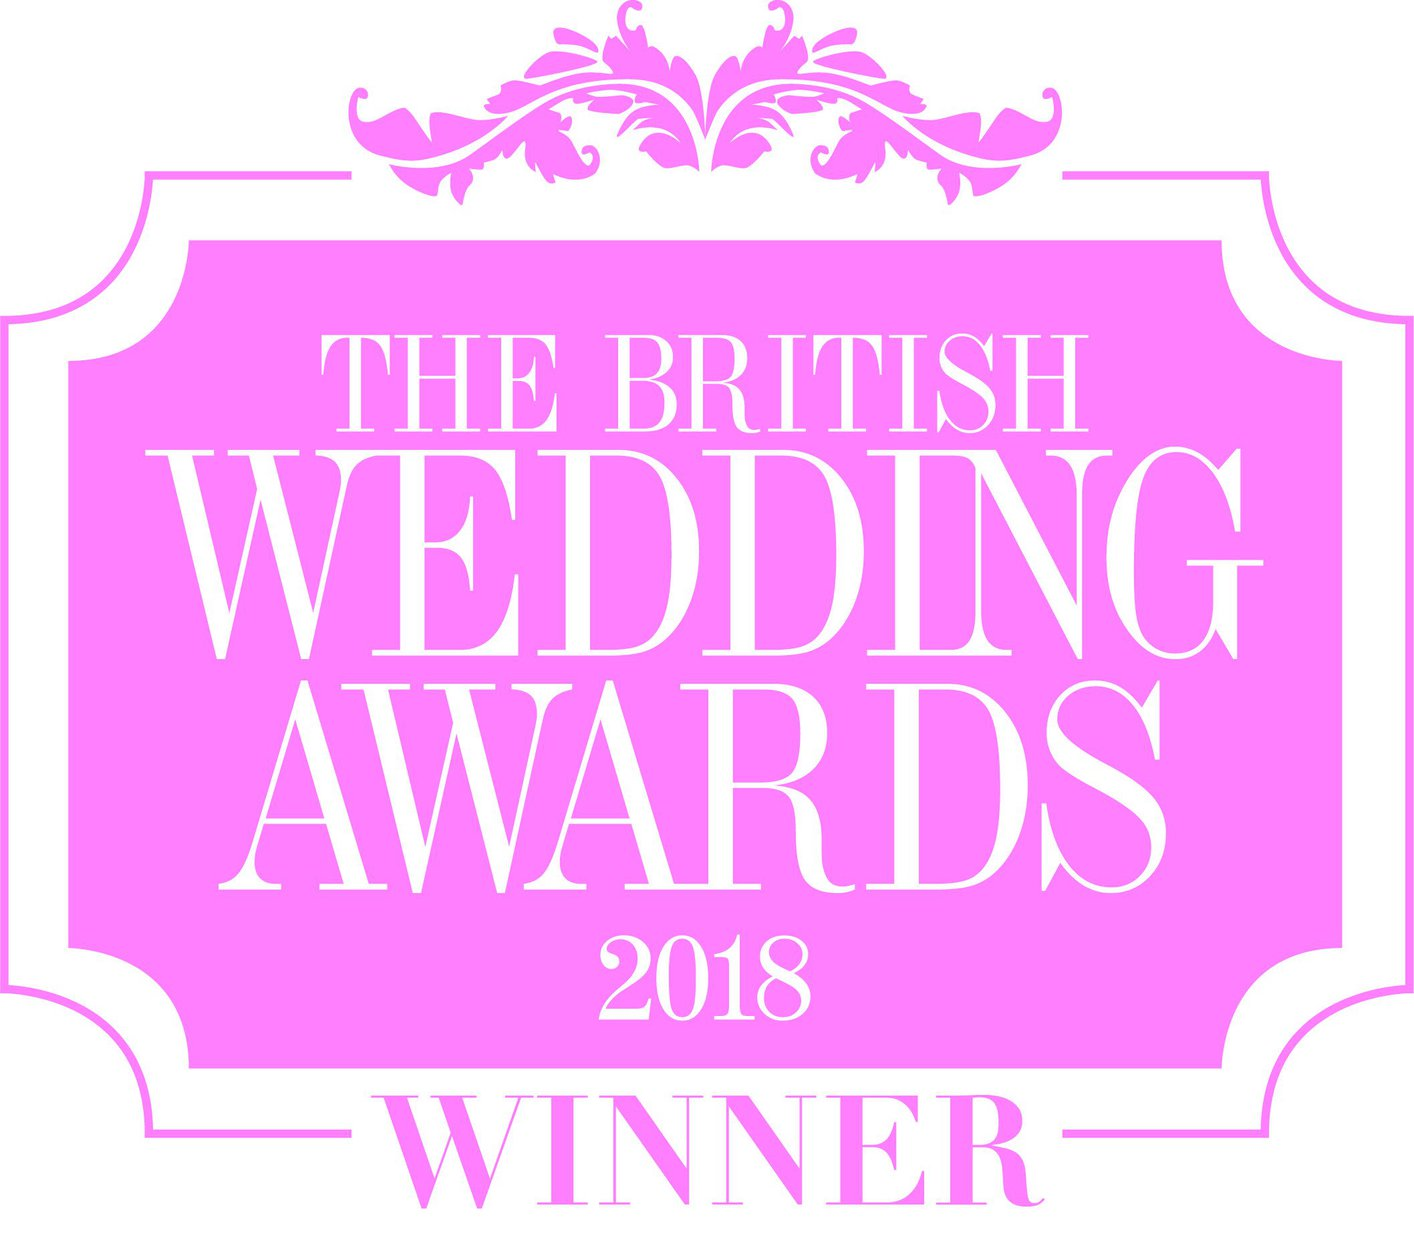 Winners of British Wedding Awards Best Newcomer 2018